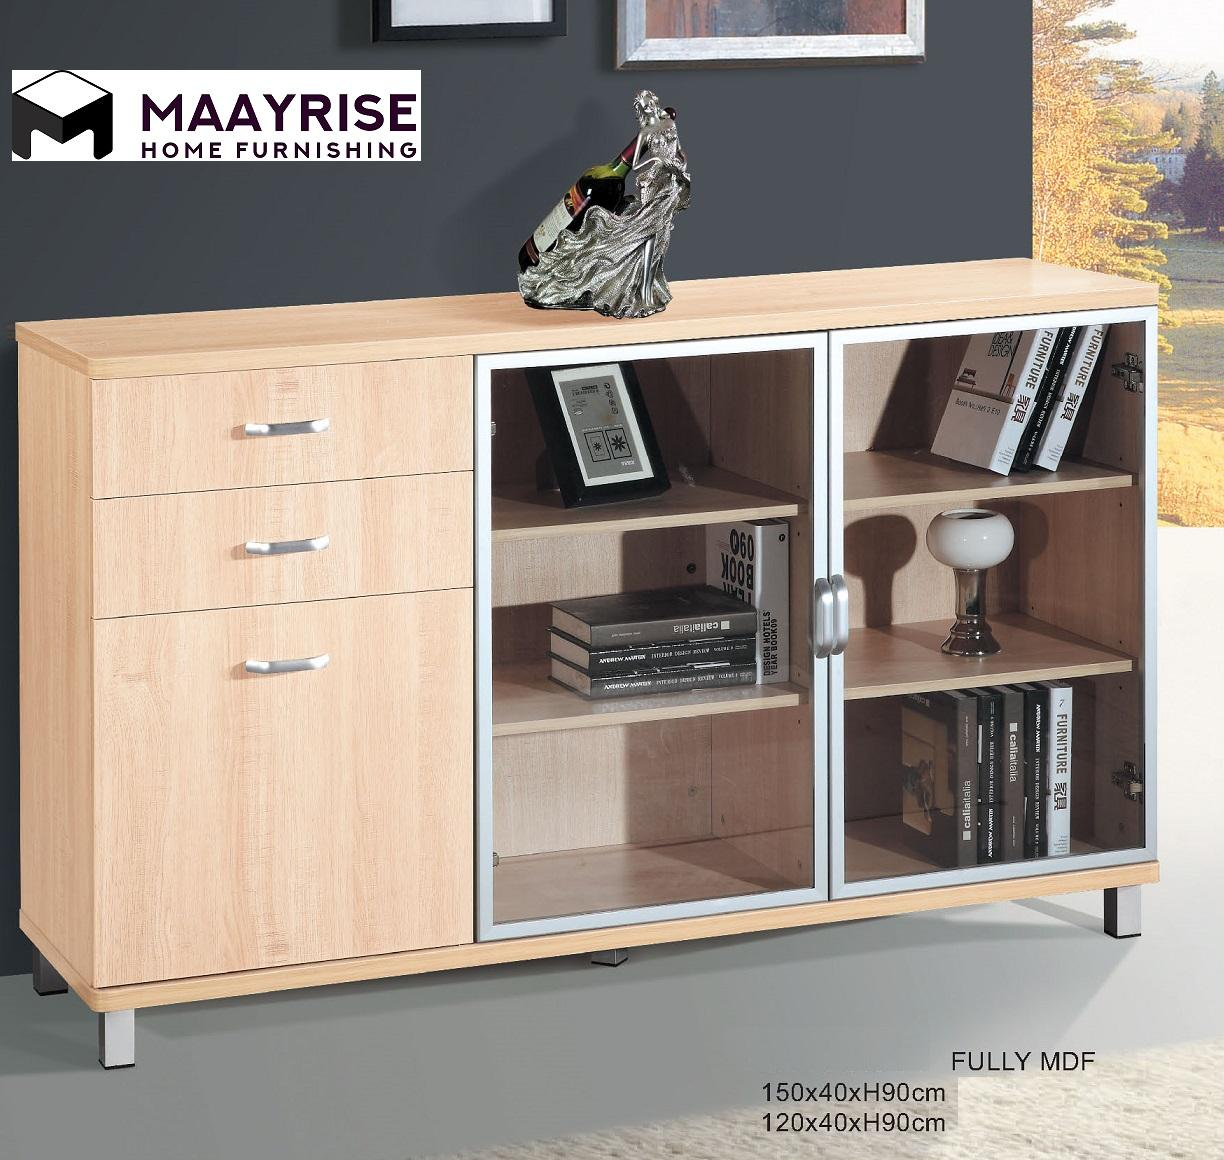 [MAAYRISE] Display Cabinet 14-S38 1.2Meter